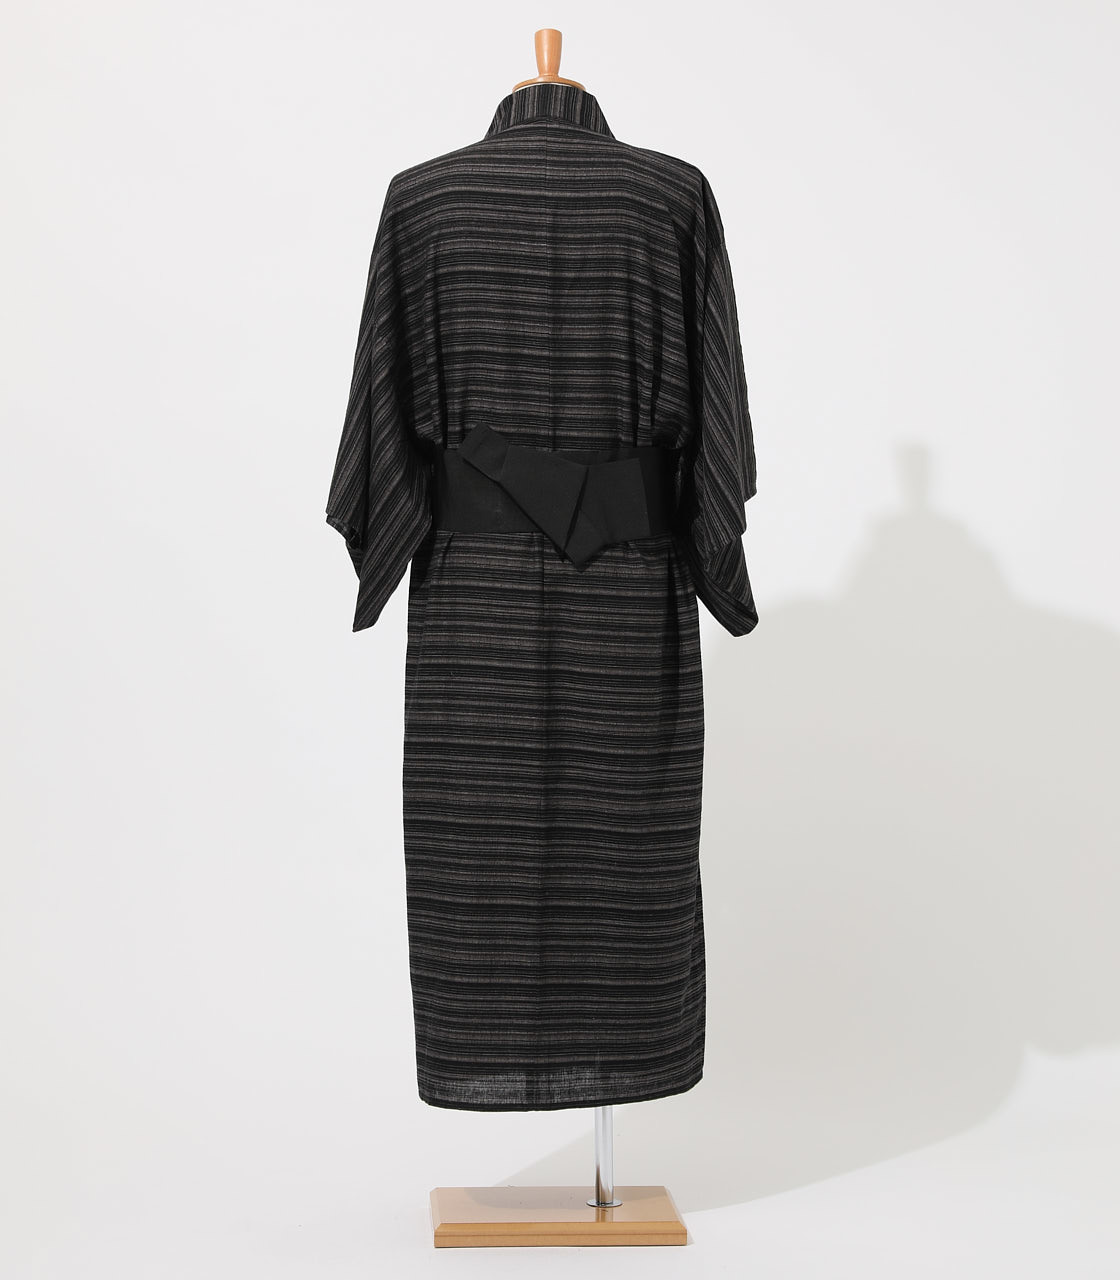 LINEN COTTON YUKATA 詳細画像 BLK 4